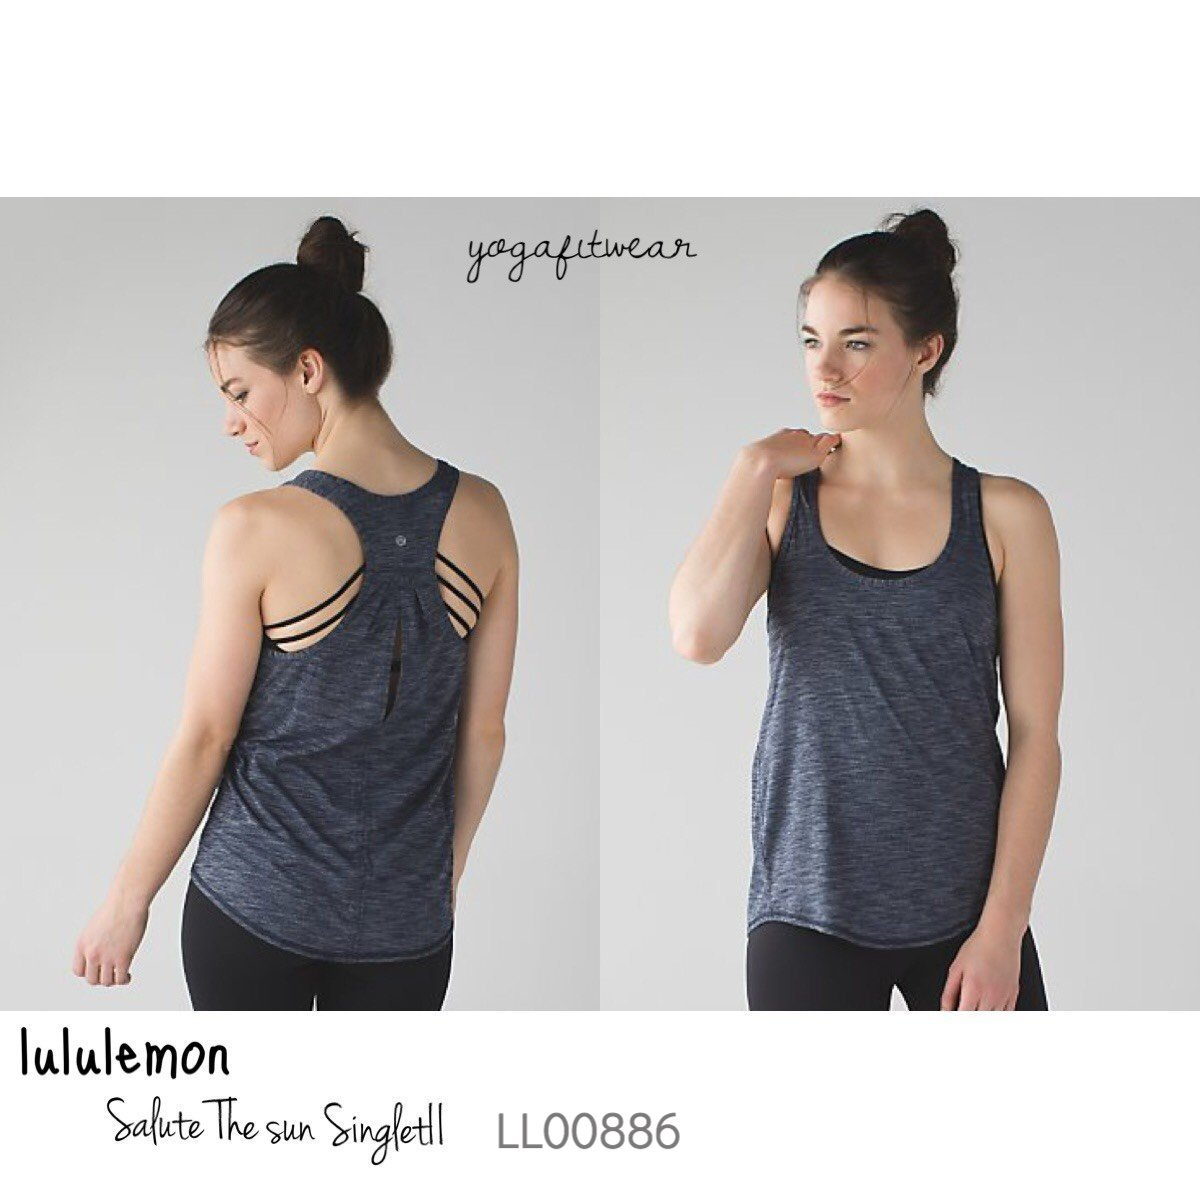 Lululemon - Salute the sun SingletII (Heathered Inkwell) (LL00886)